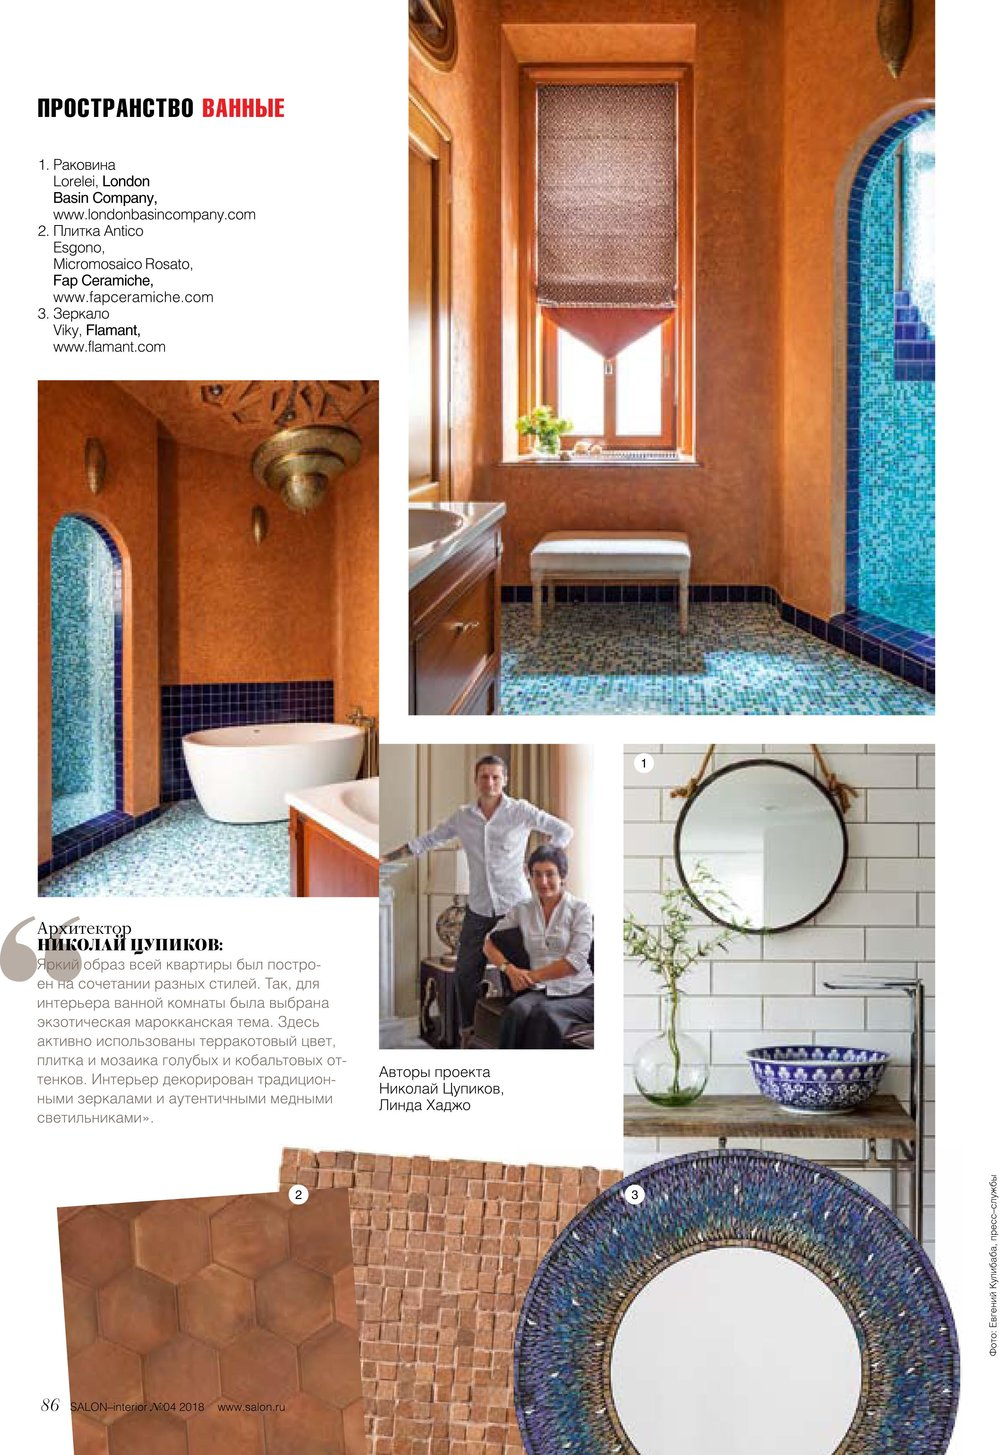 Salon Interior Magazine, April 2018 LBC.jpg